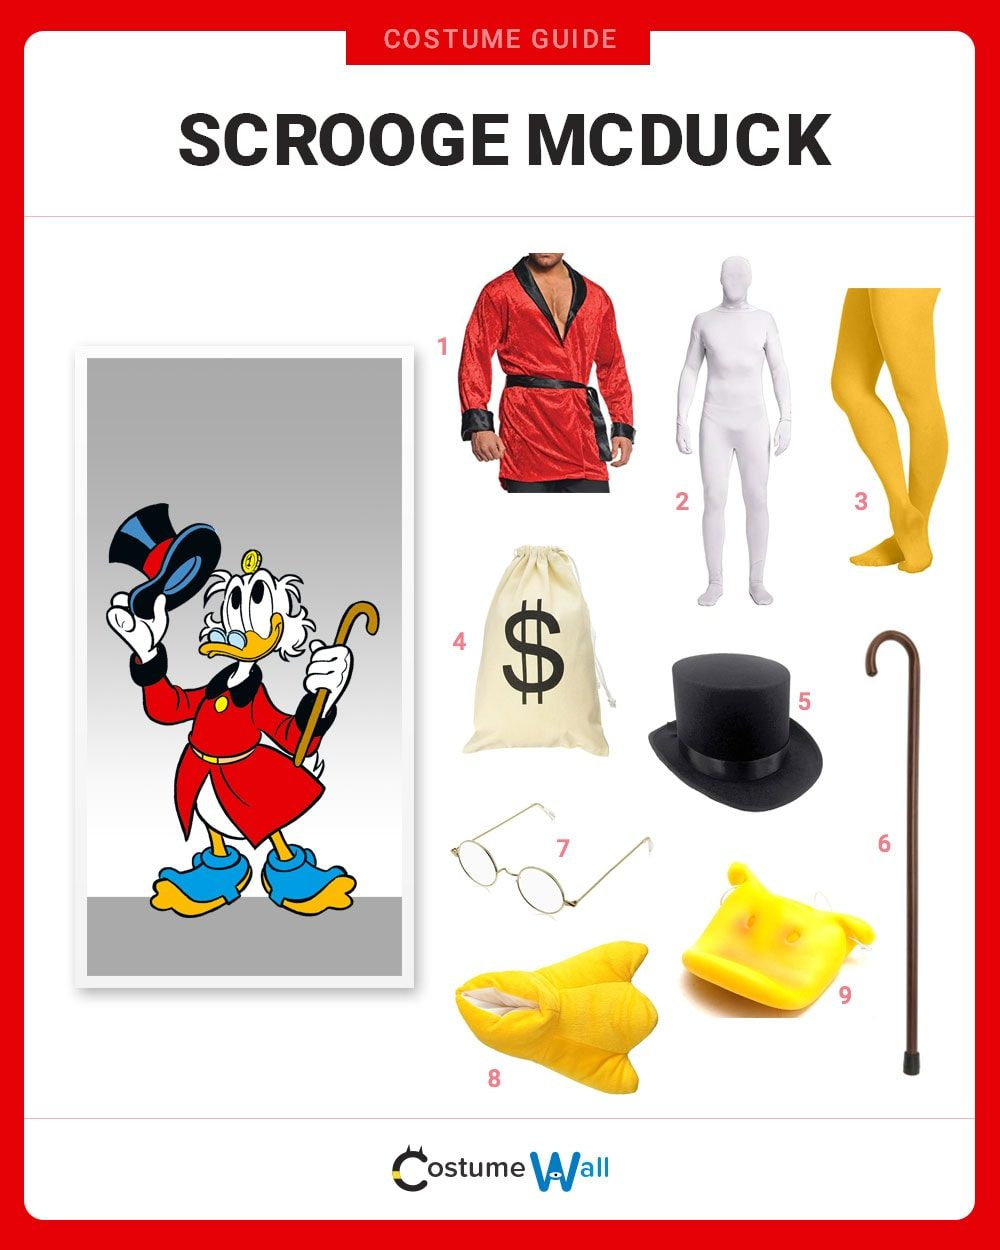 Scrooge McDuck Costume Guide